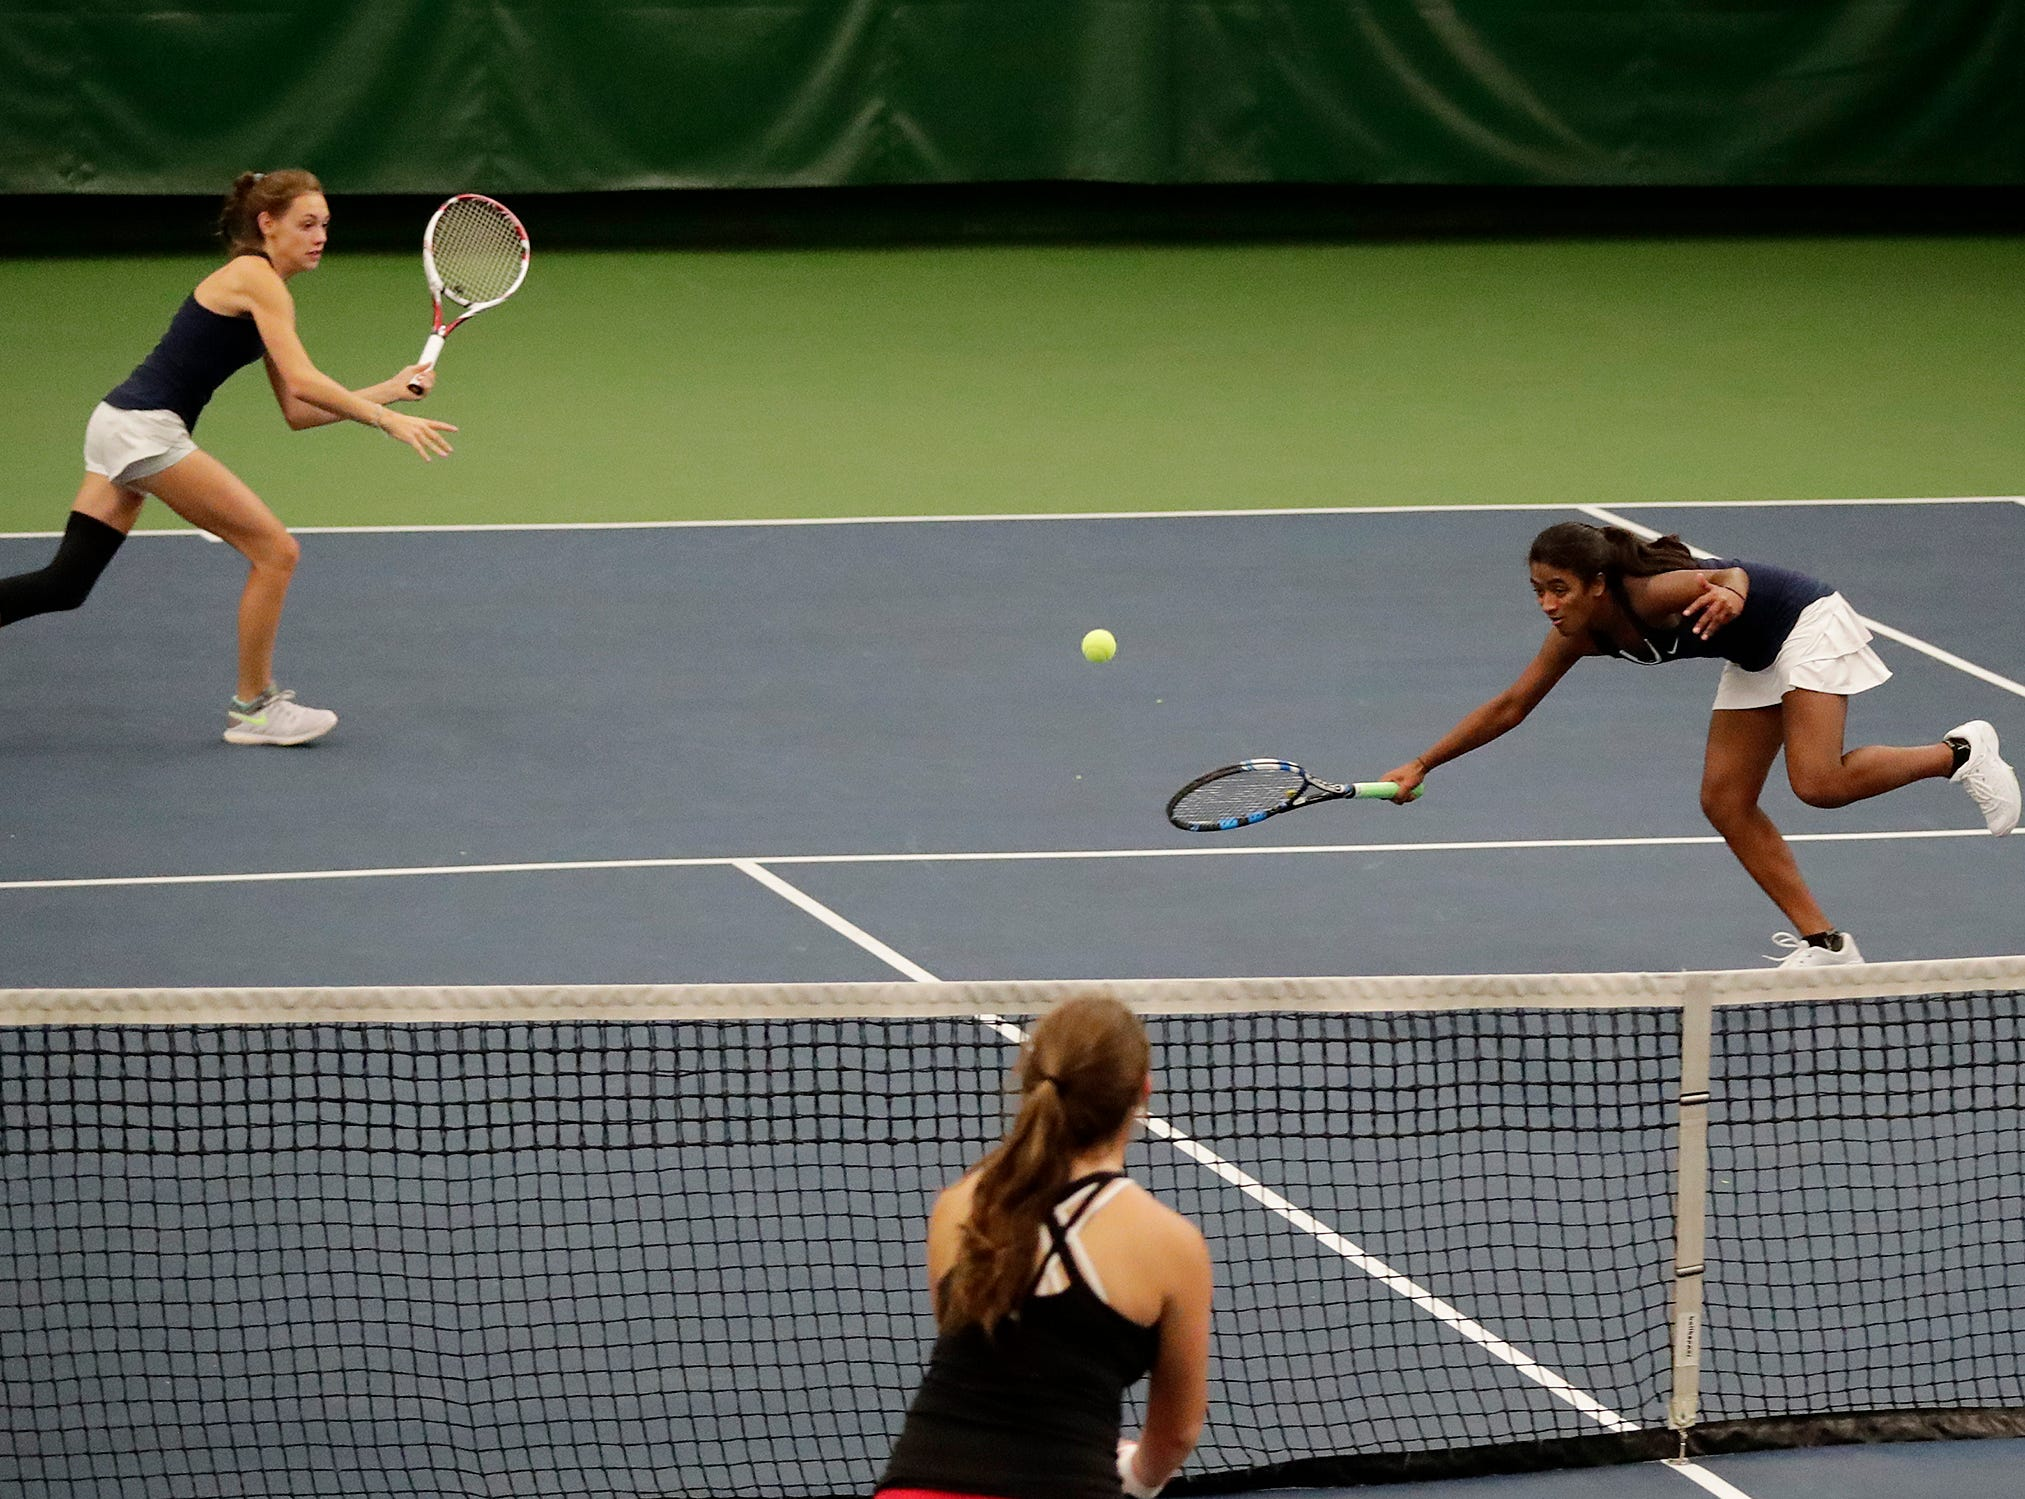 Sheboygan North's Sommer Schoenenberger and Ashwini Murthy play in a Division 1 doubles match at WIAA 2018 Girls State Tennis Tournament at Nielsen Tennis Stadium on Friday, October 12, 2018 in Madison, Wis.